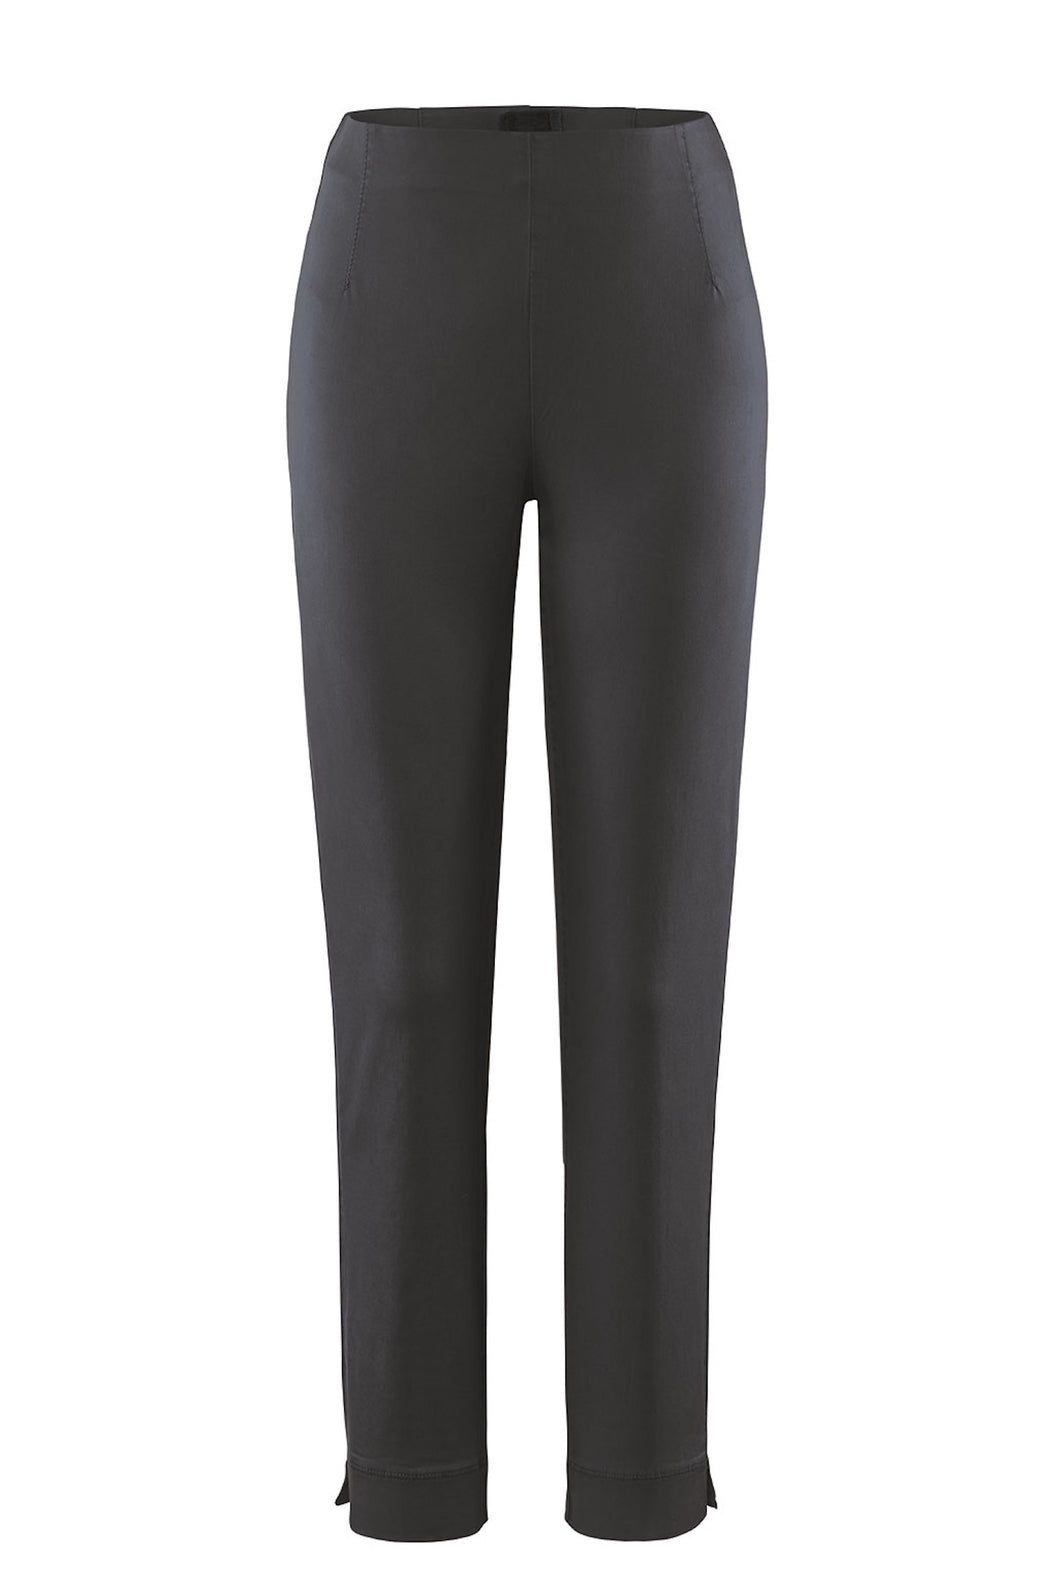 Stehmann - Louisiana Pull On Trousers Black